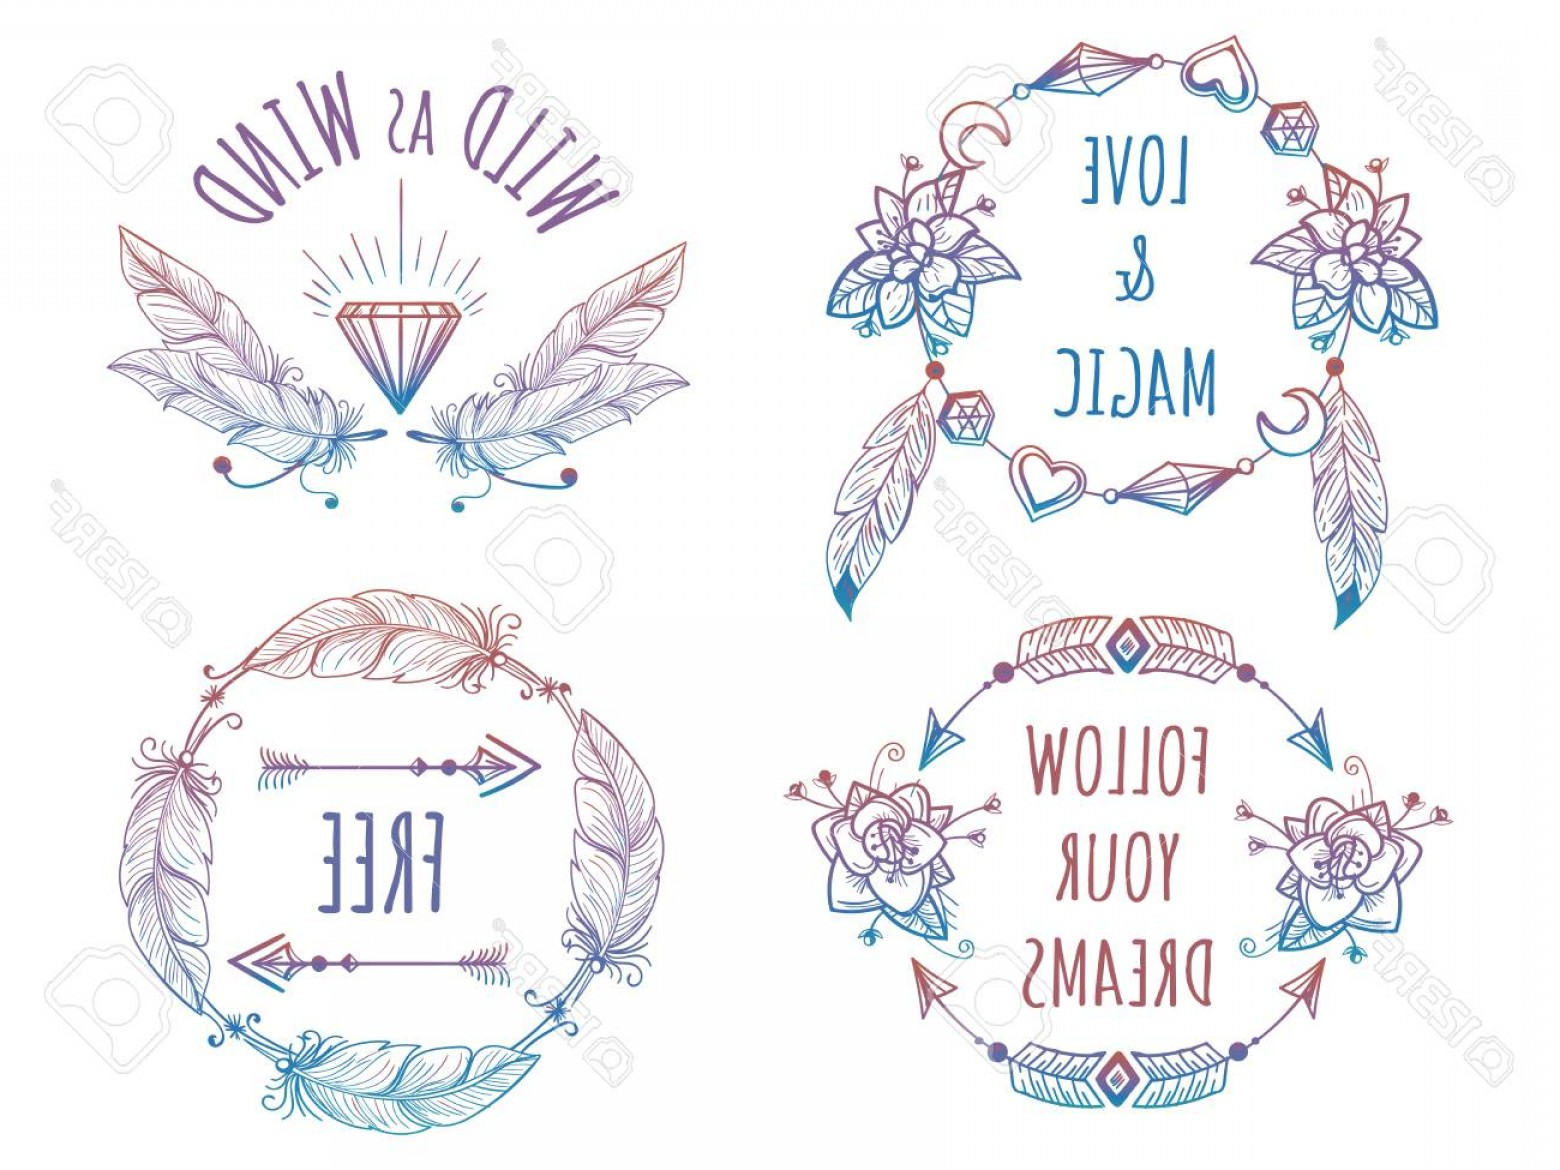 Bohemian Flowers Vector: Photostock Vector Colorful Bohemian Banners With Arrows Flowers And Feathers And Lettering Signs